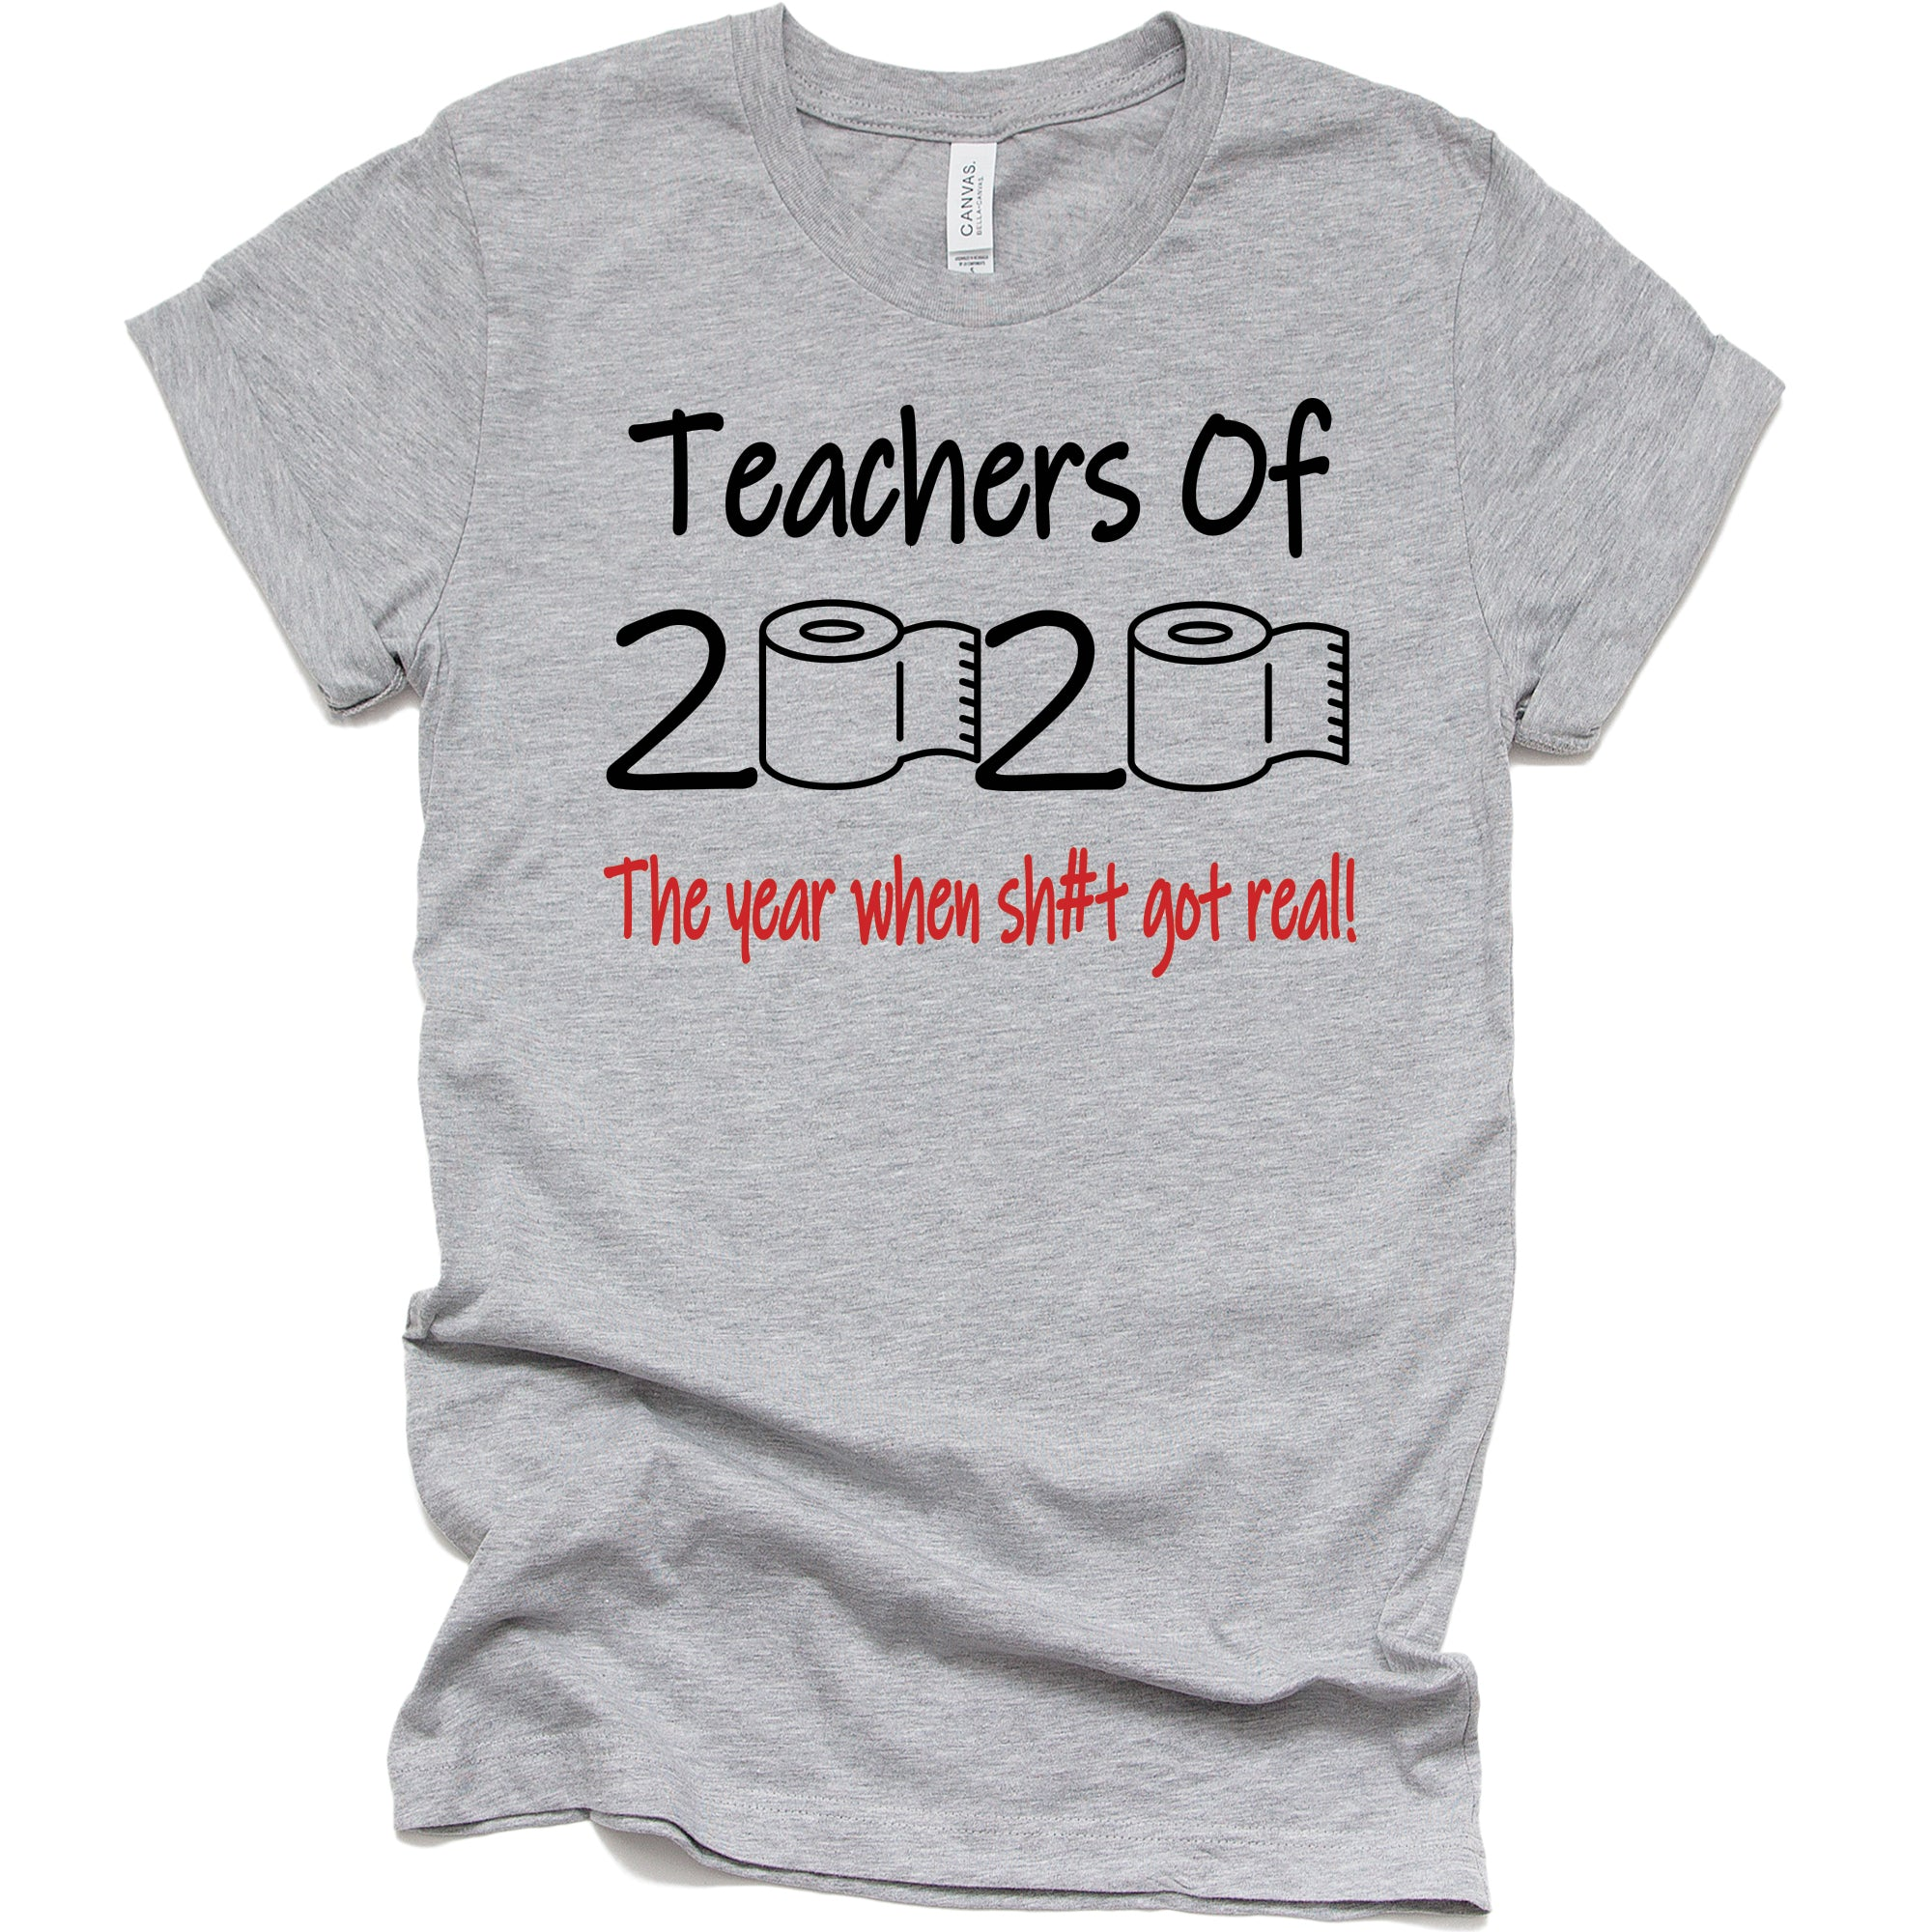 Teachers Of 2020 - The Year When Sh#t Got Real!